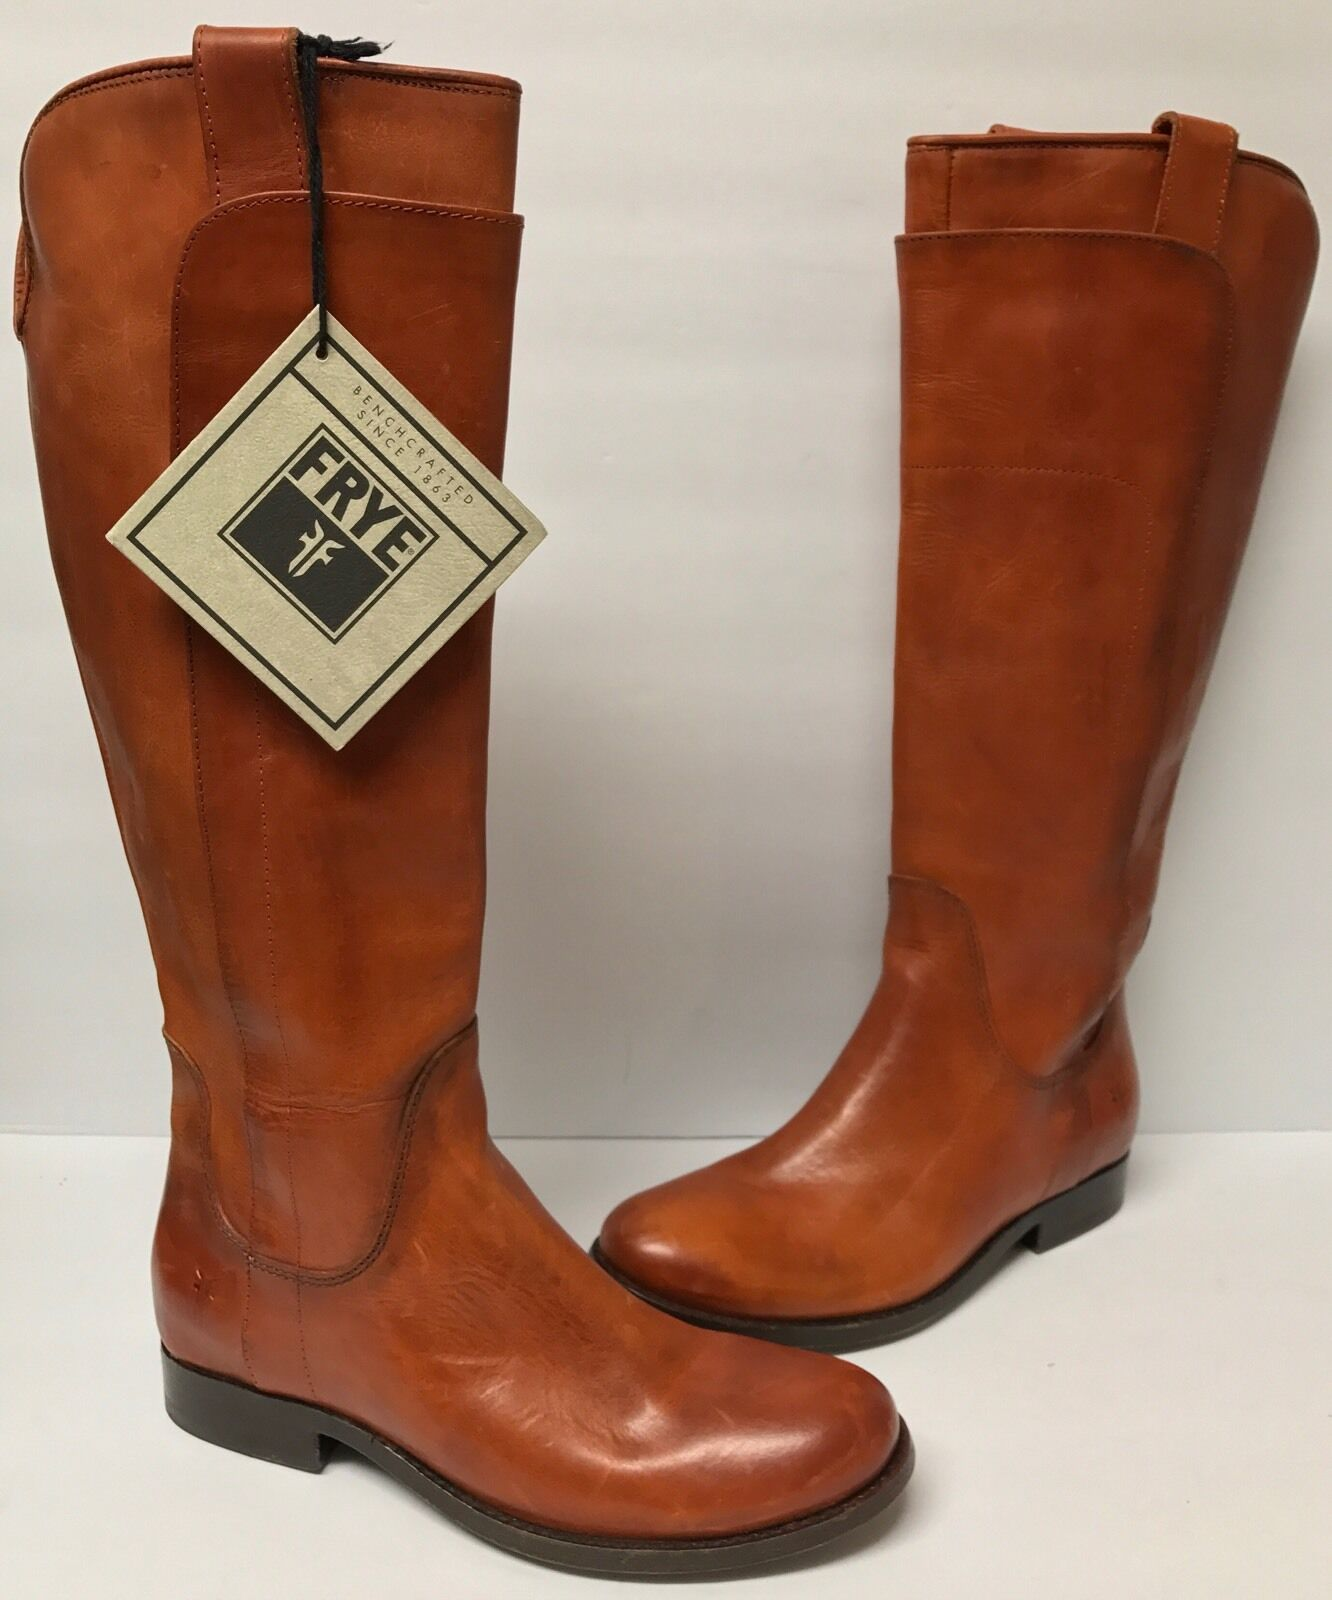 FRYE 'Melissa' Riding Boot Size 5.5 B